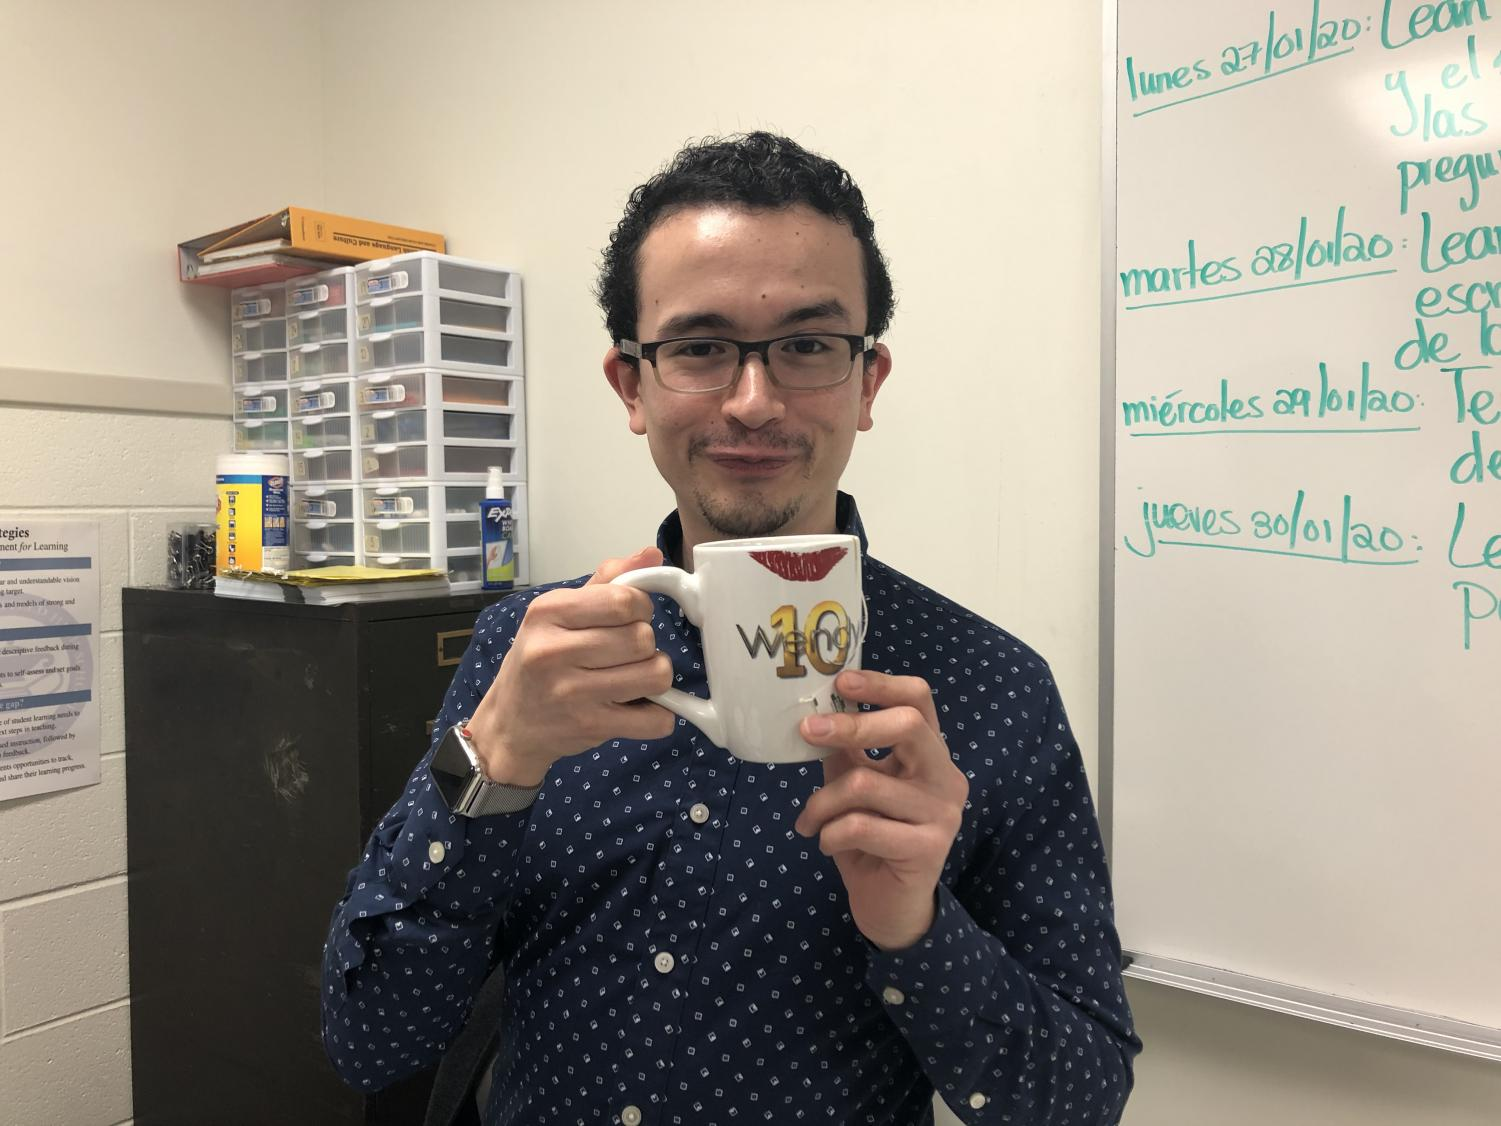 Juan Tinoco making one of his signature reaction faces while holding his Wendy Williams mug.